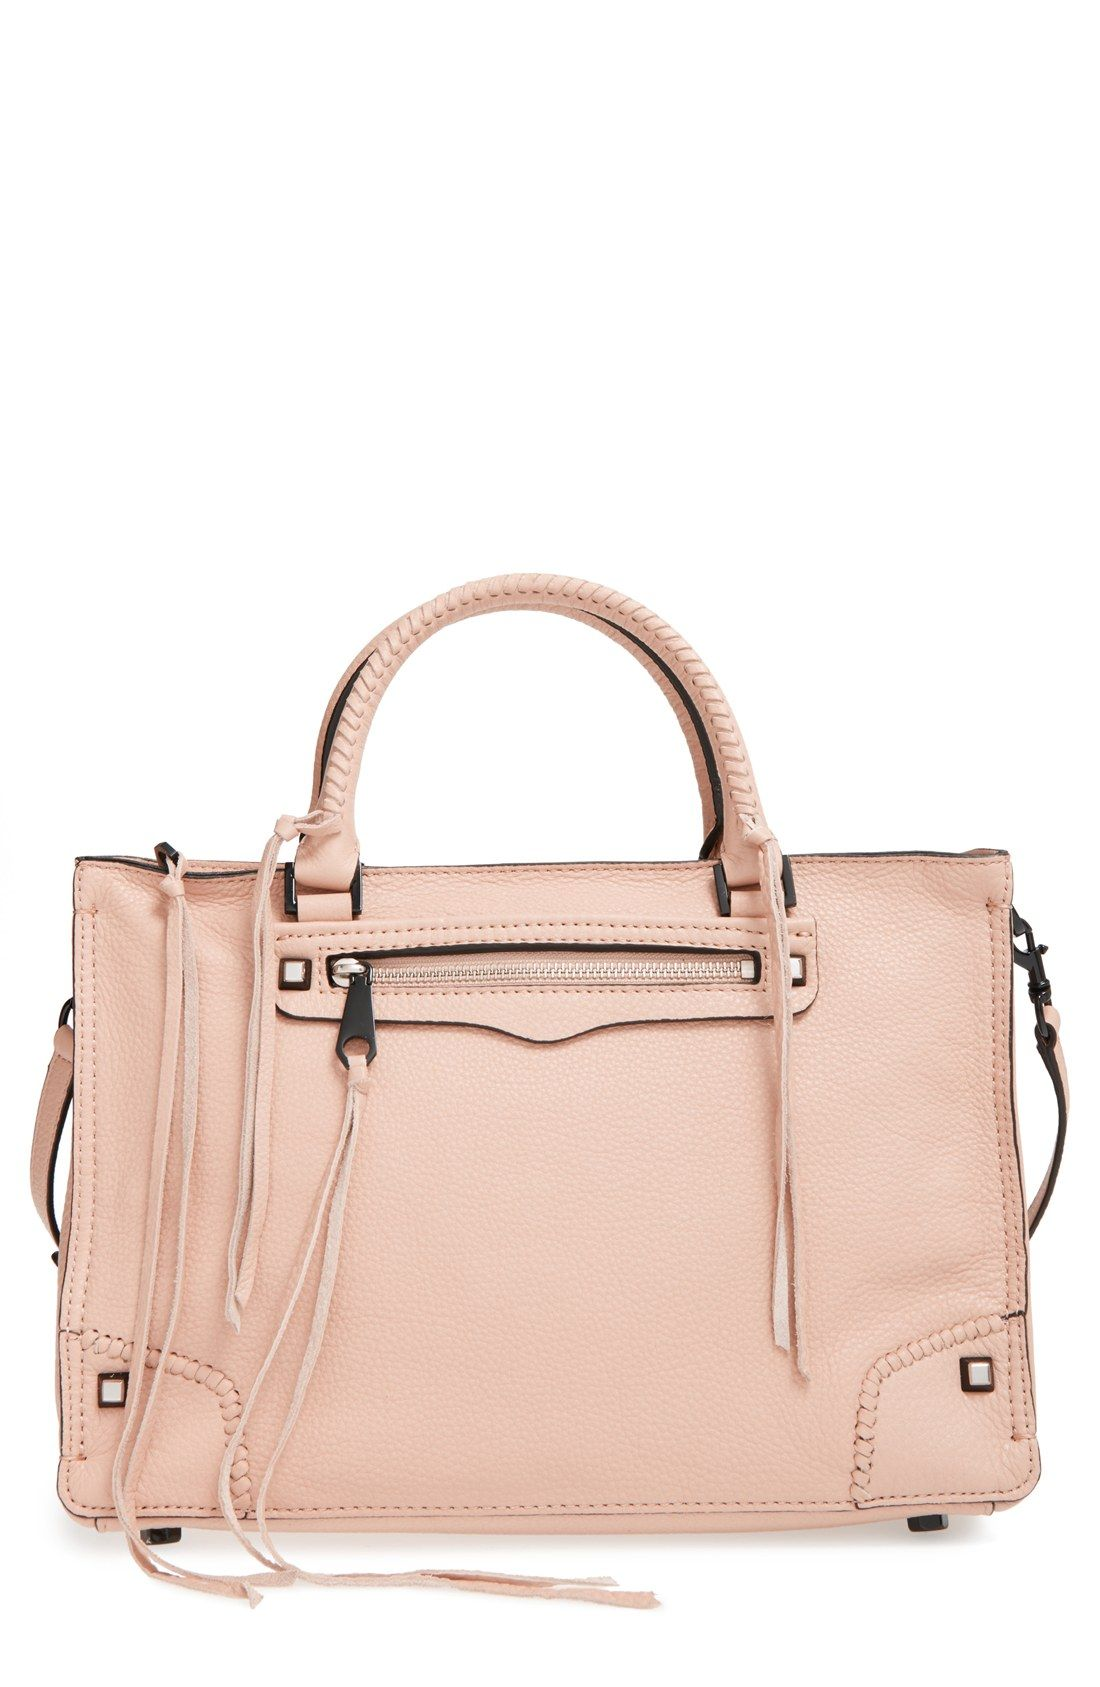 In Love With This Rebecca Minkoff Tote Bag The Leather Is So Soft Yet Still Stays Up When You Set It Down Outside Pocket Perfect For A